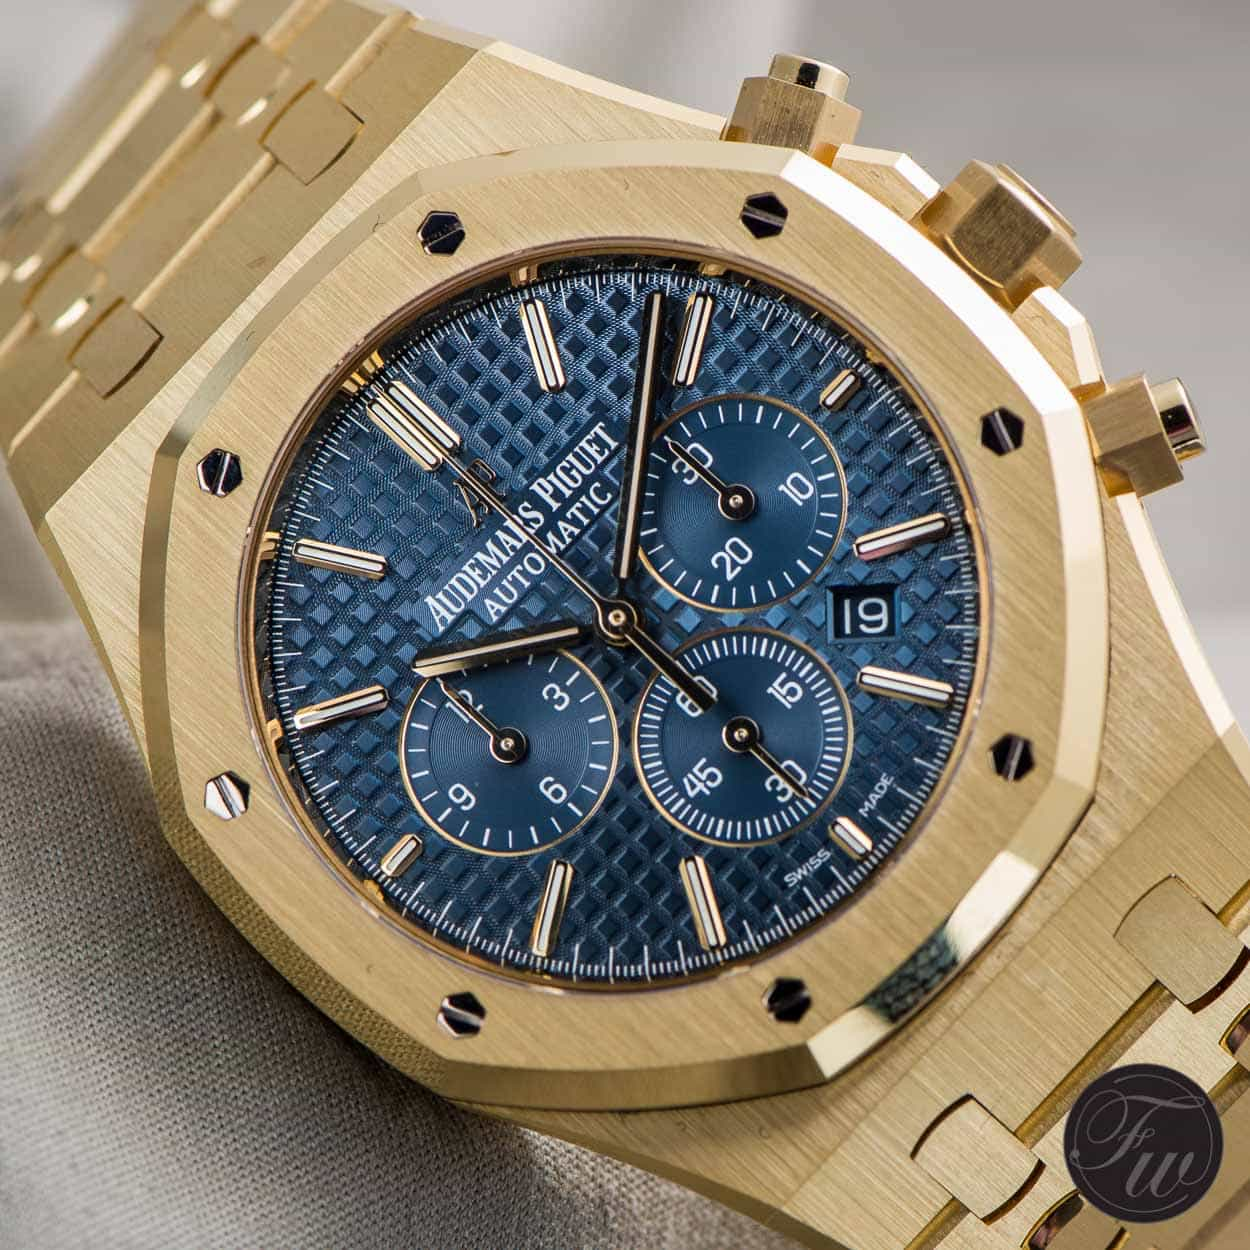 Hands On With The Audemars Piguet Royal Oak Gold Collection